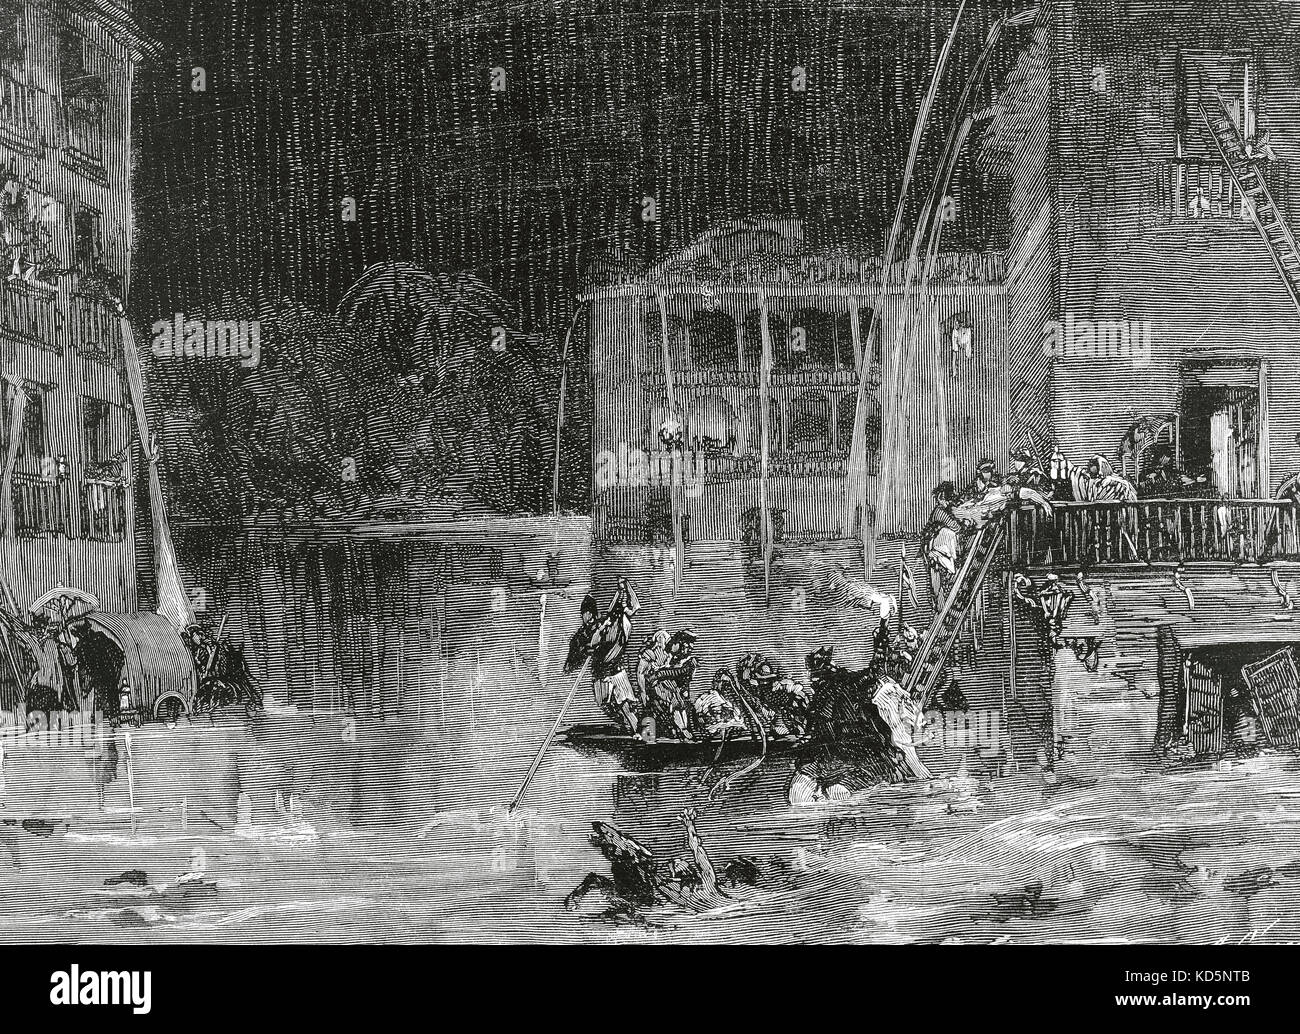 Spain. Murcia. The flood of Santa Teresa (15 October 1879). Flood in the Marques de Camacho square.  Engraving by - Stock Image